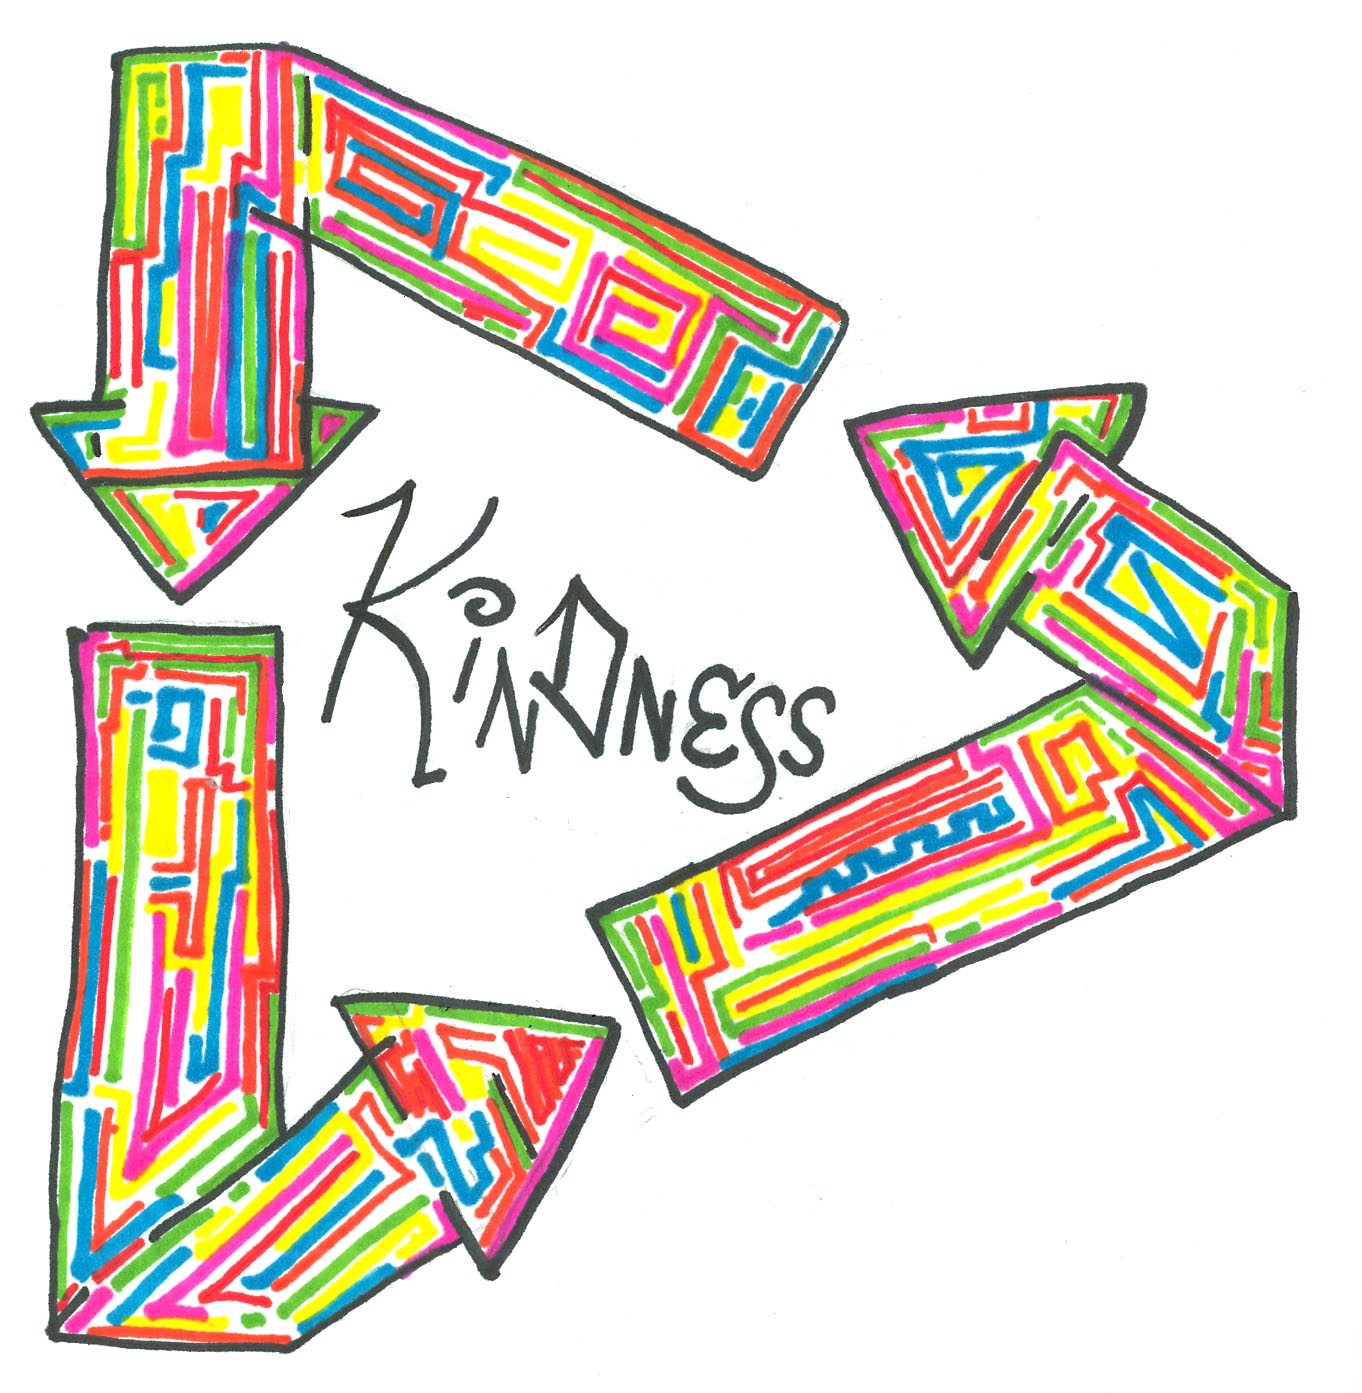 Kindness clipart free graphic free Free Kindness Cliparts, Download Free Clip Art, Free Clip Art on ... graphic free